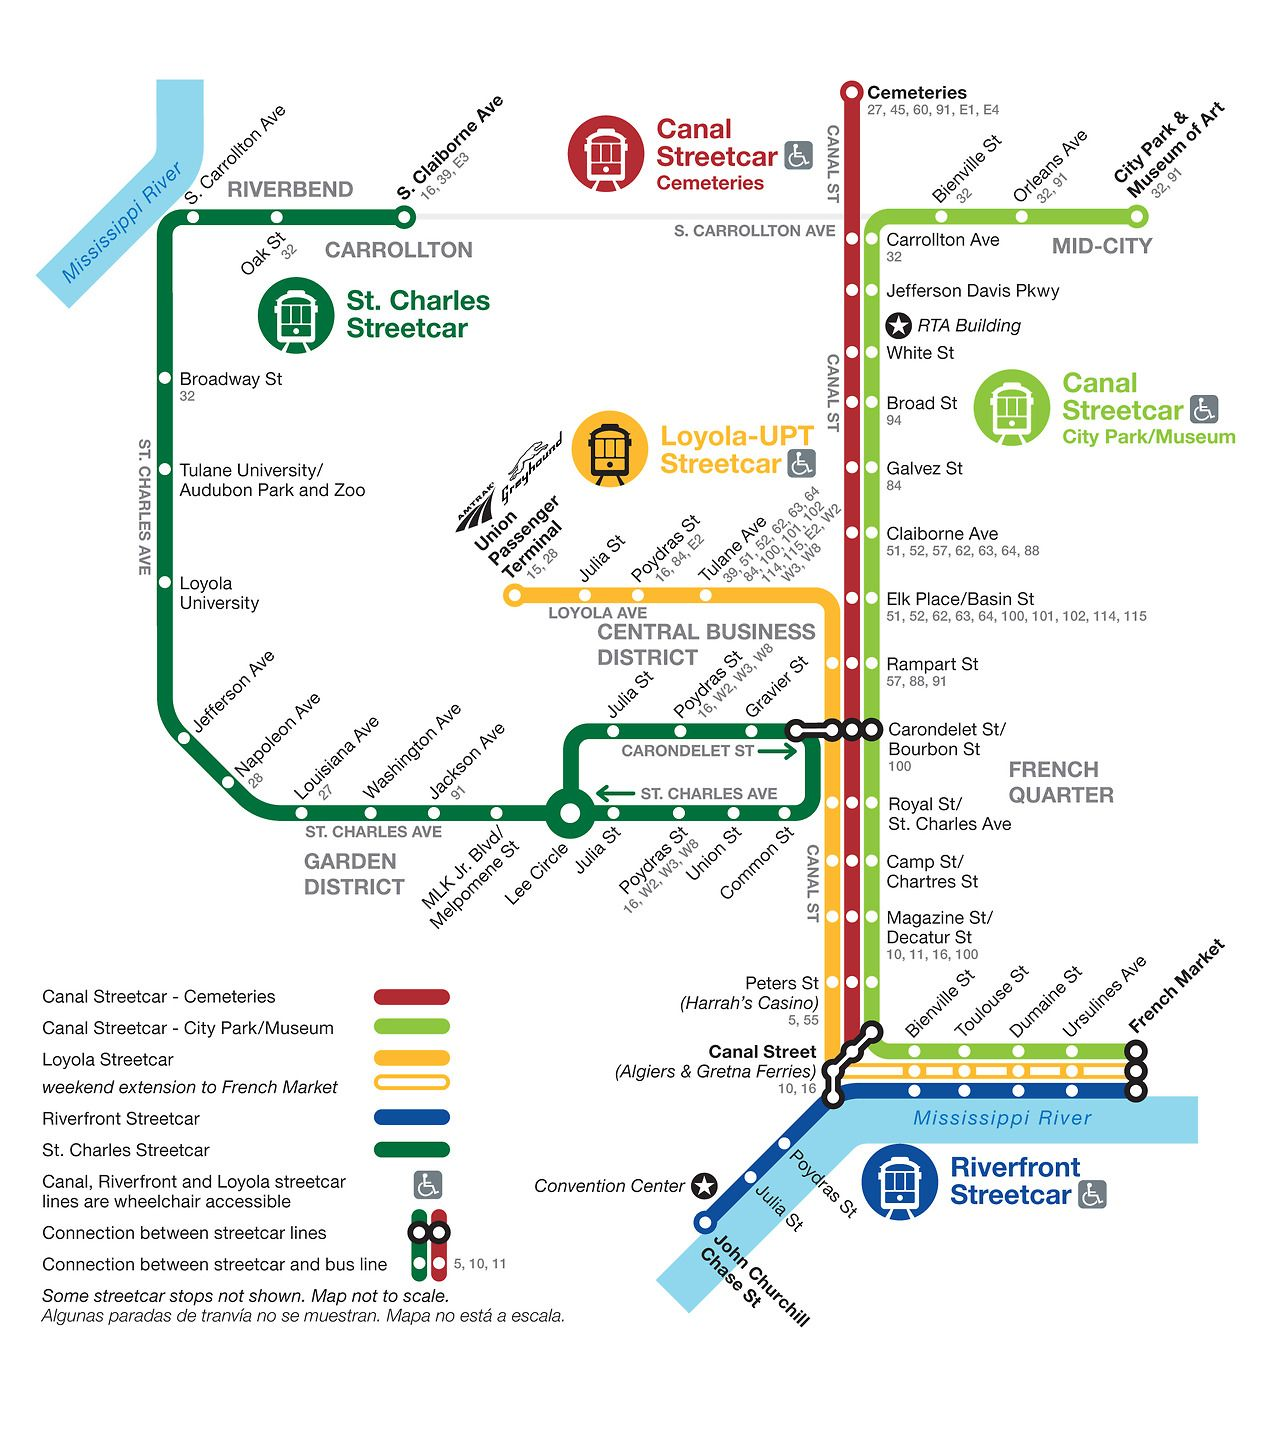 New Orleans Trolley Map Official Map: Streetcar Network, New Orleans Brought to my